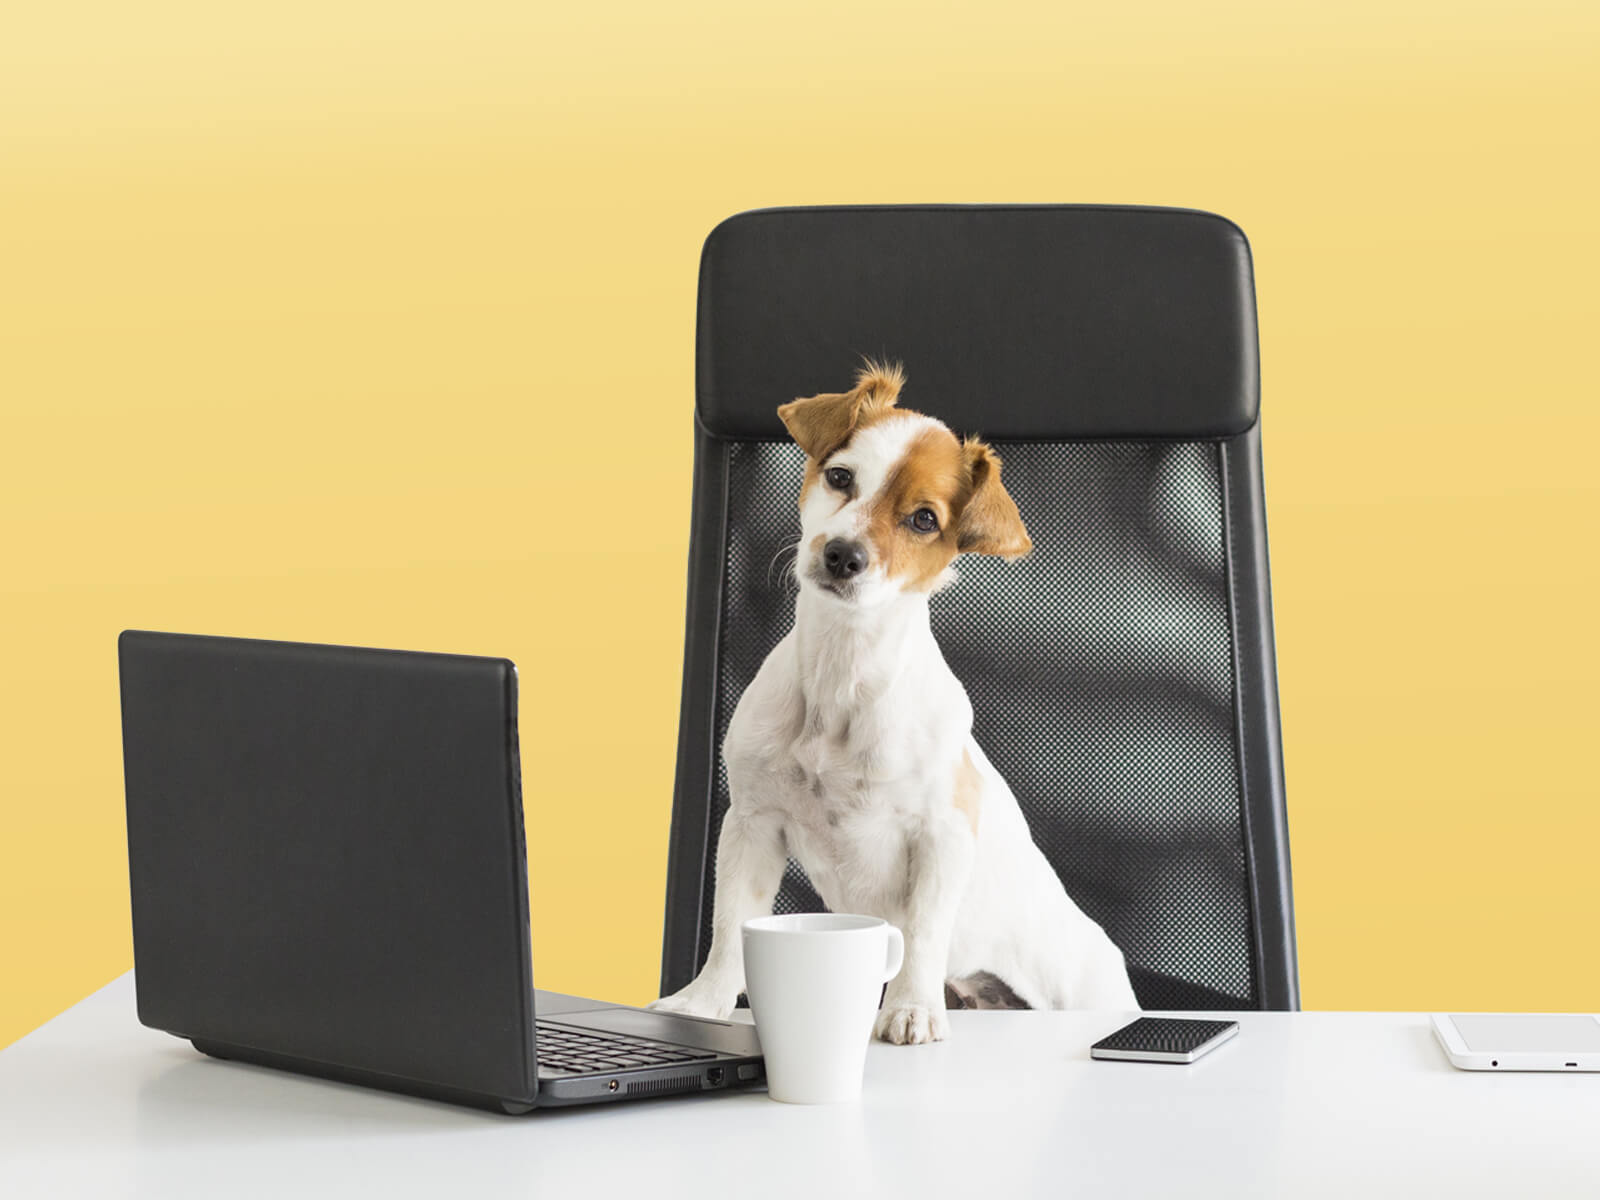 Puppy love: How to create a dog-friendly office